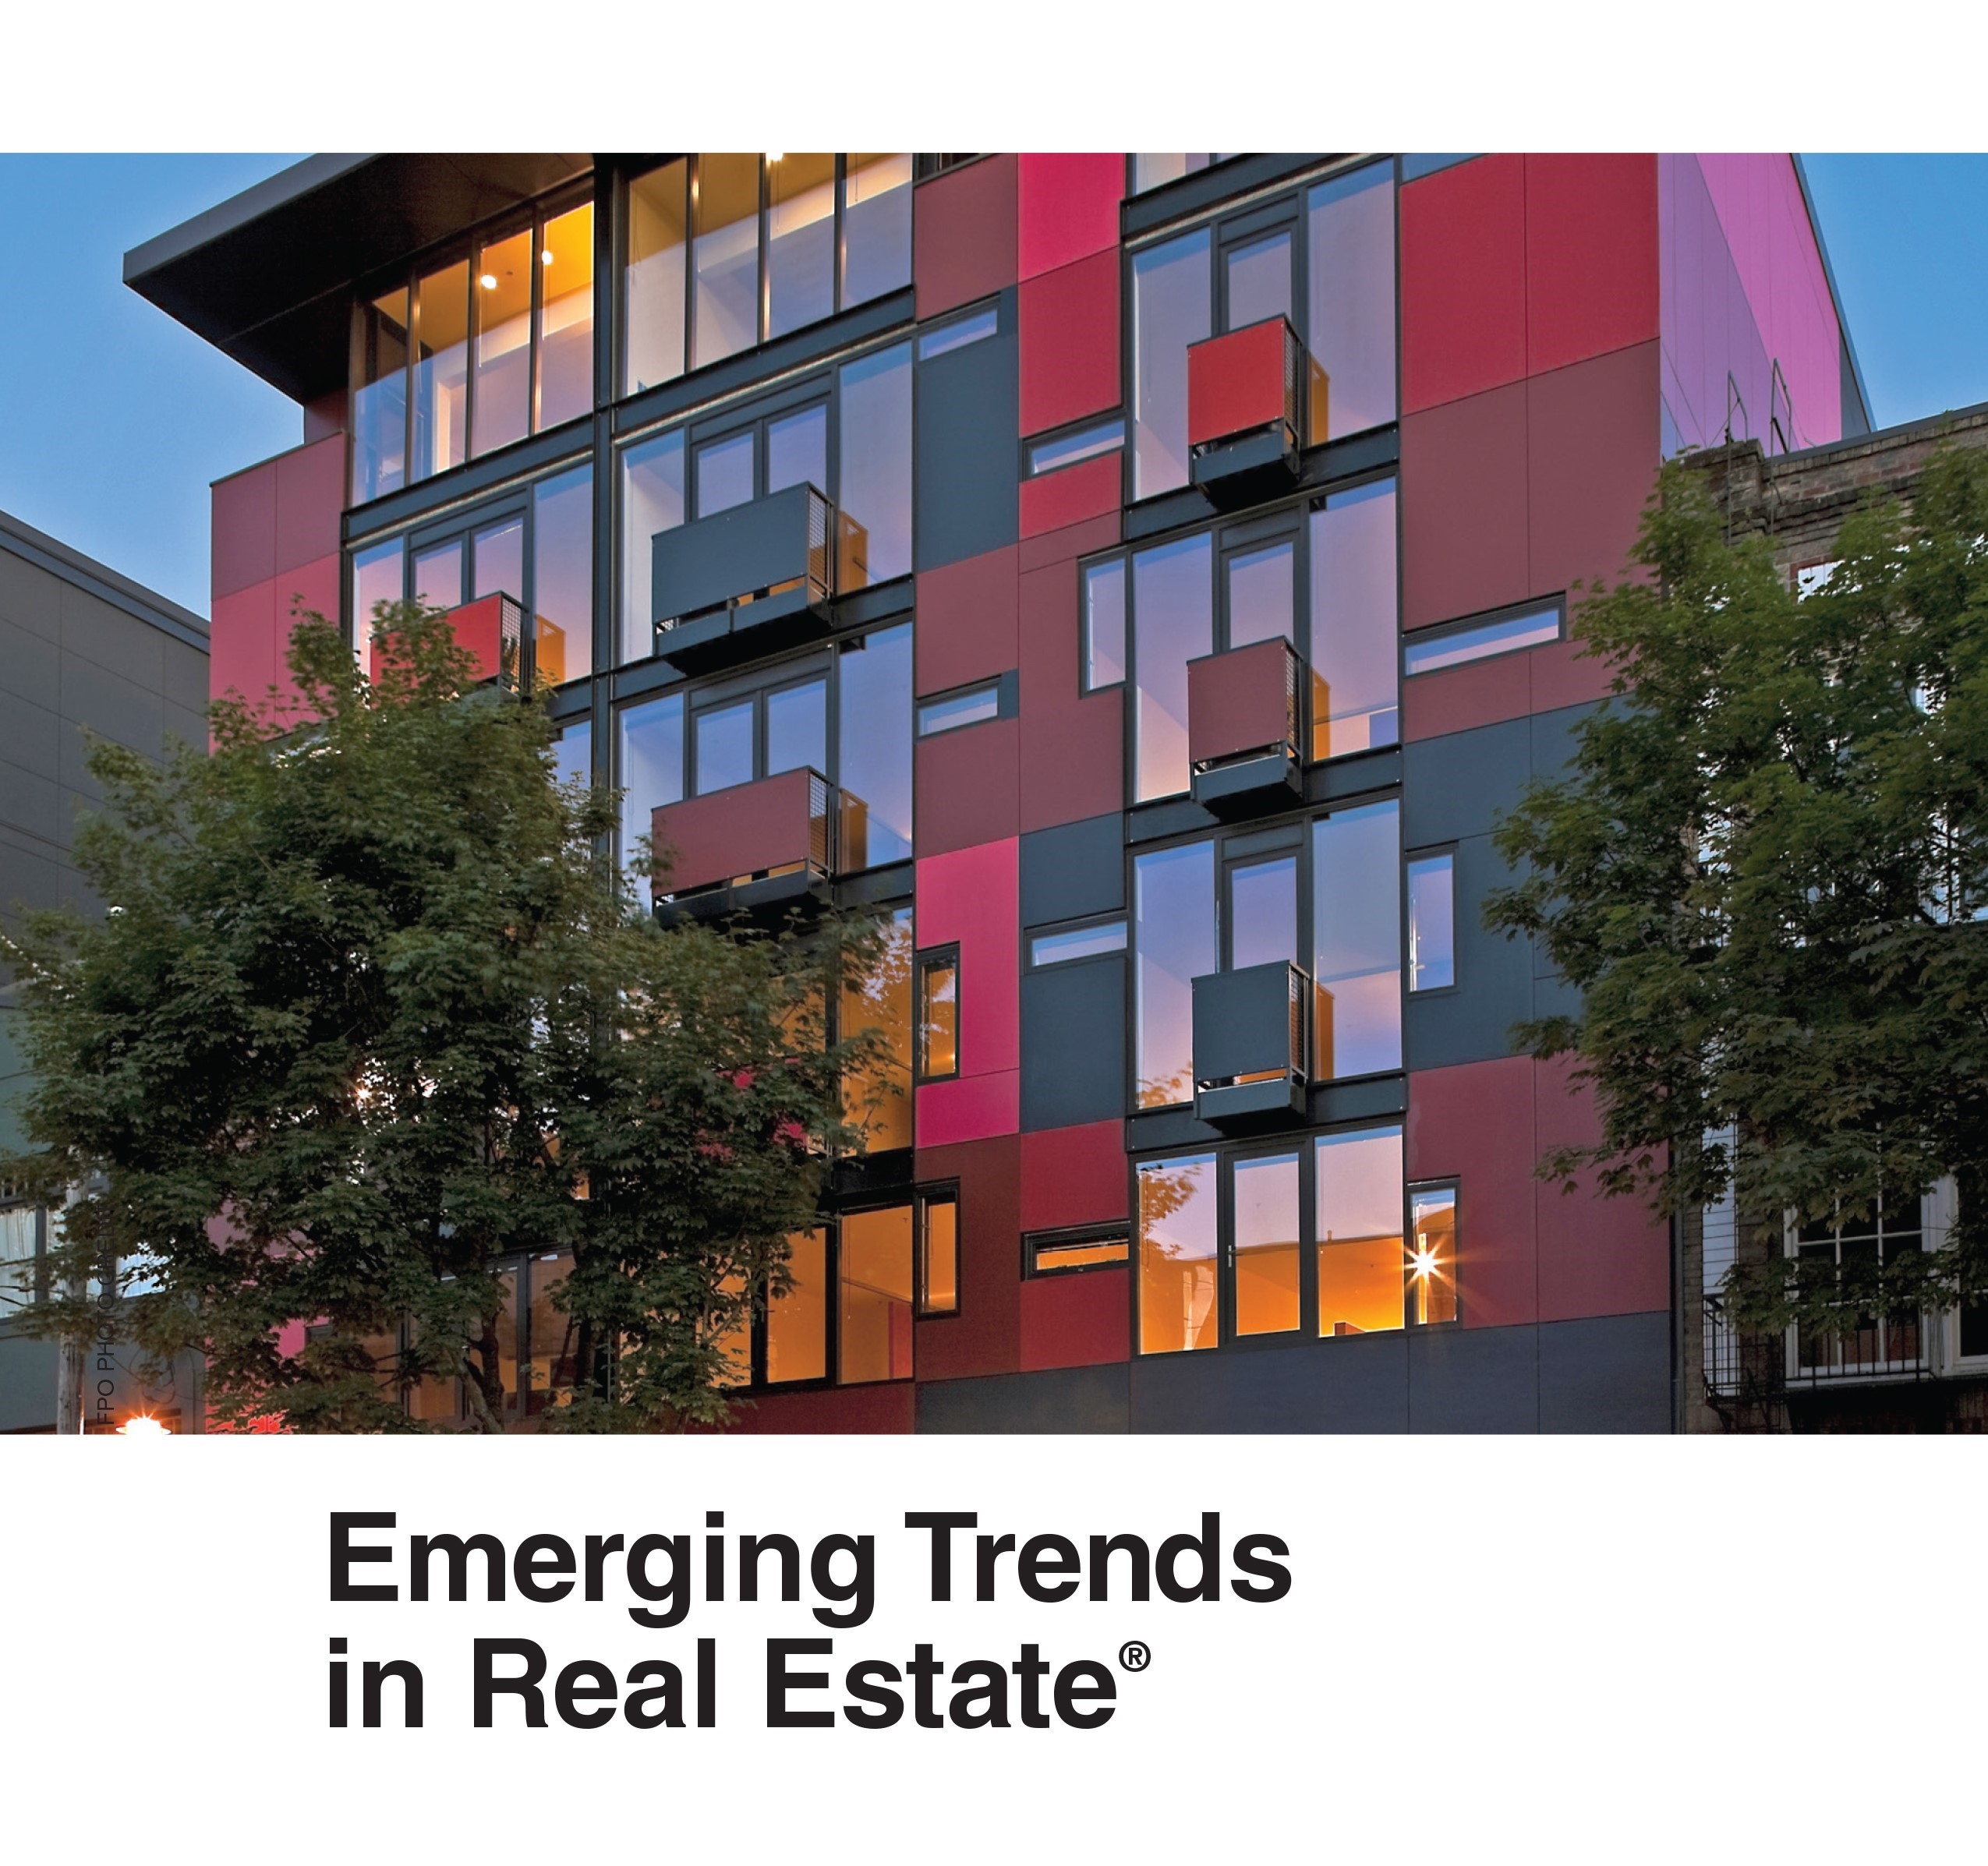 Emerging trends uli